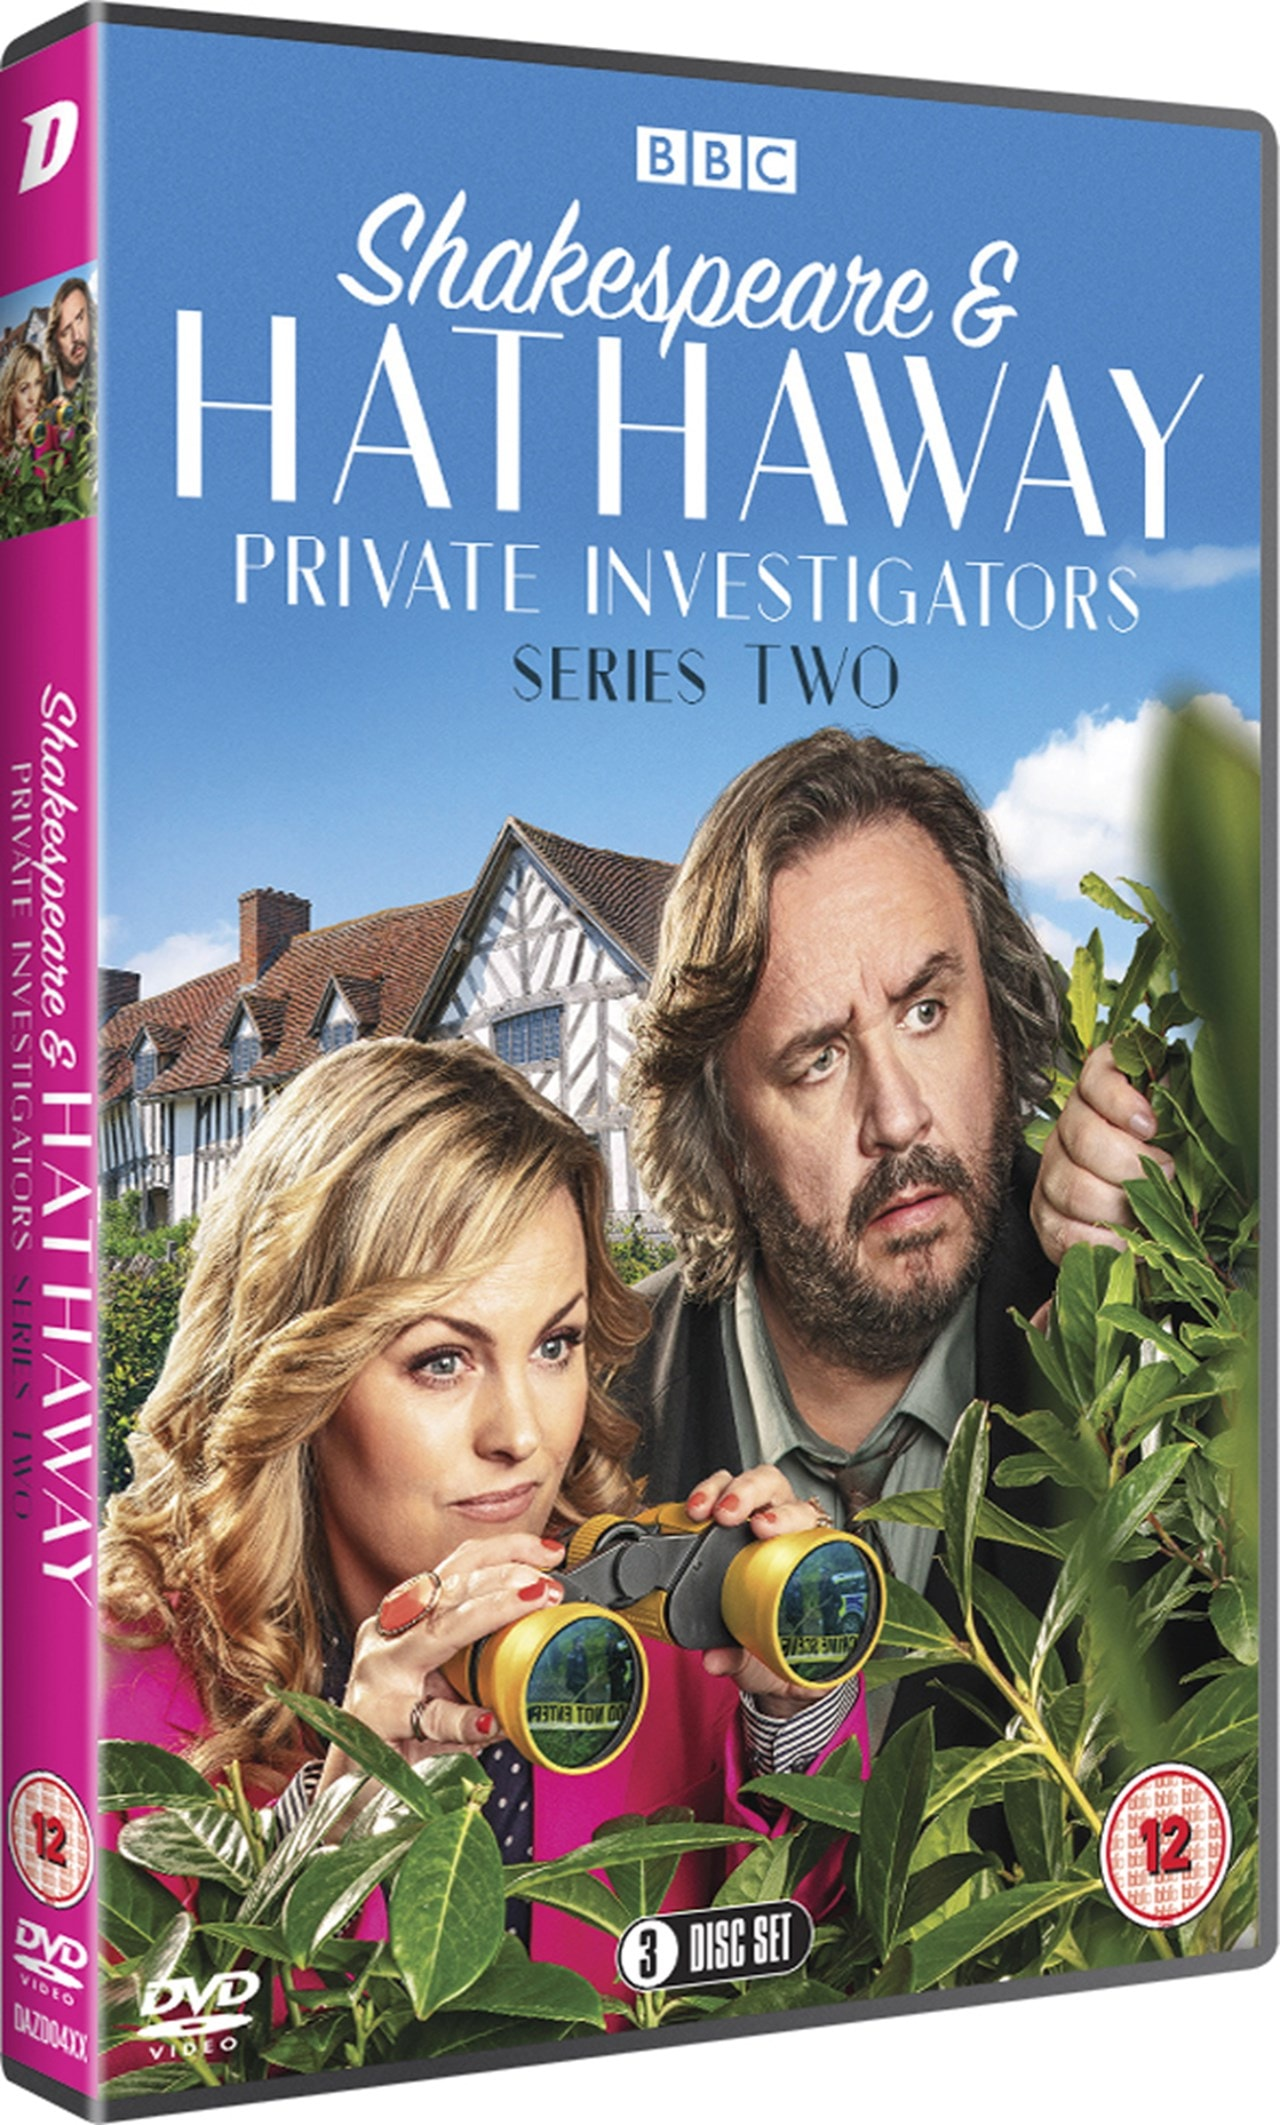 Shakespeare & Hathaway - Private Investigators: Series Two - 2